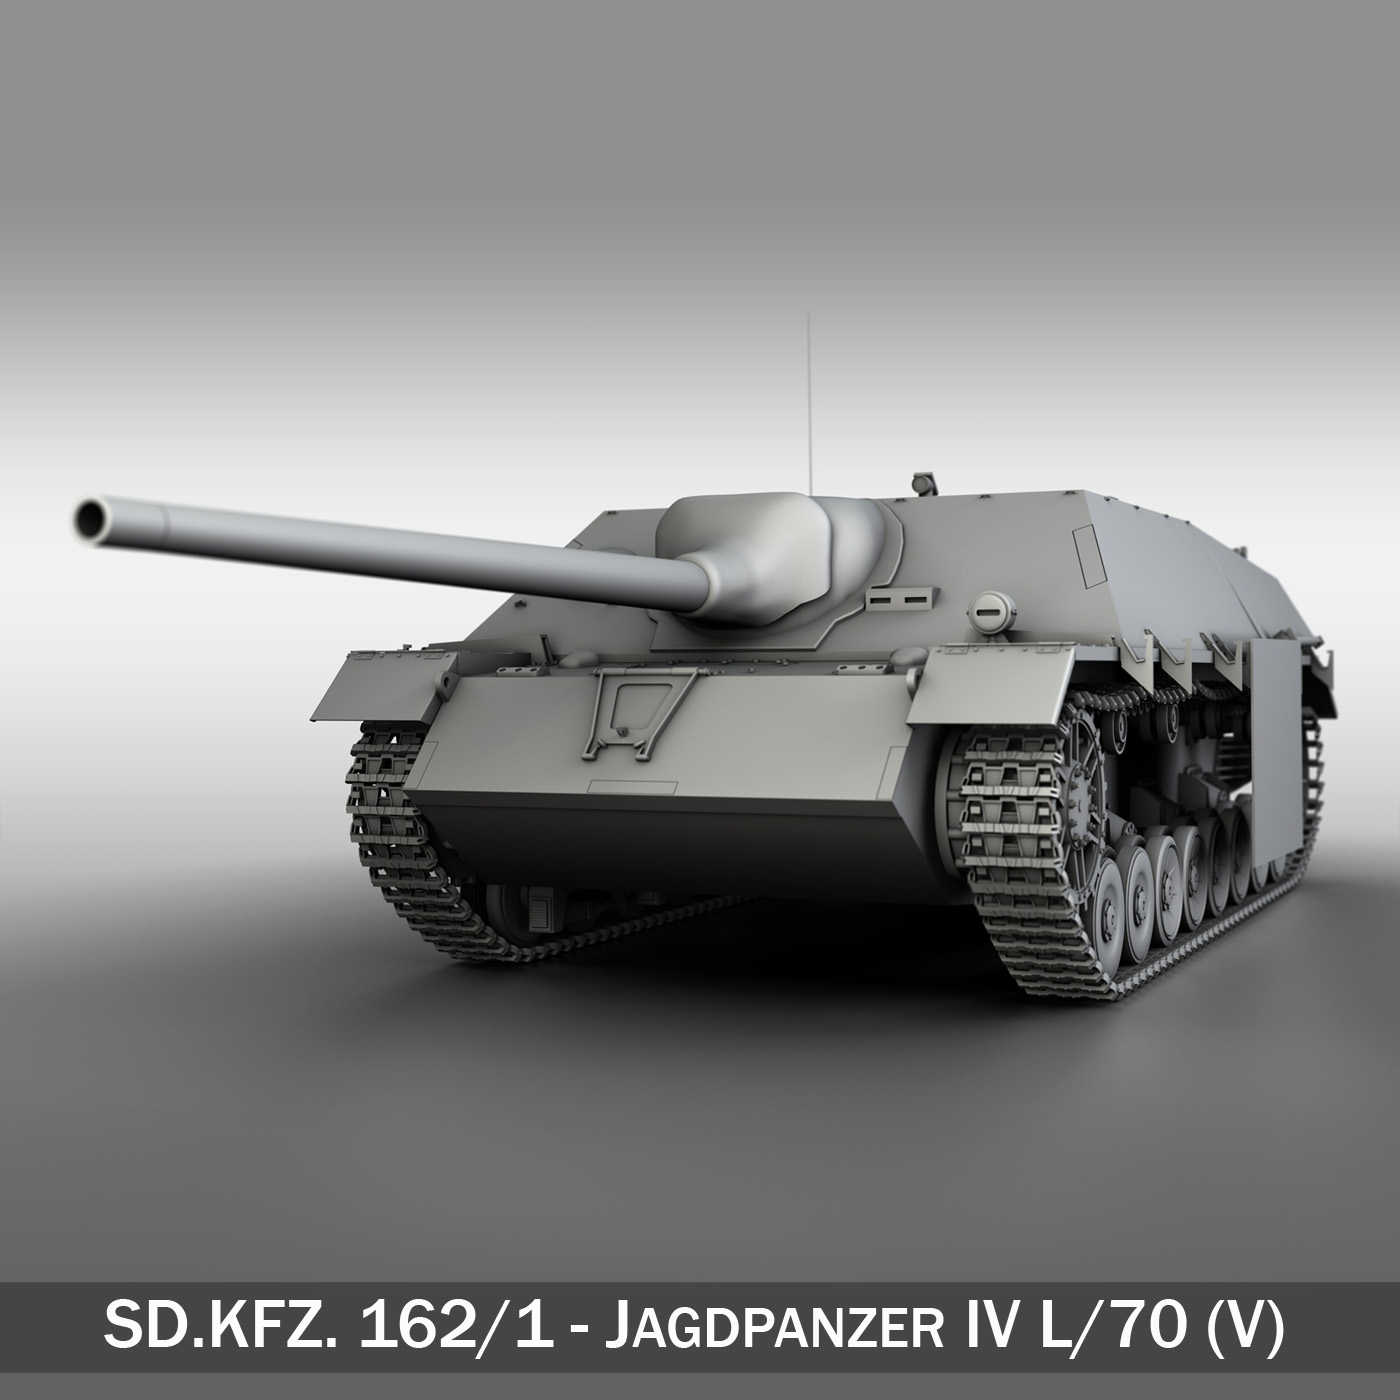 jagdpanzer iv l/70 (v) late production 3d model 3ds fbx c4d lwo obj 202018